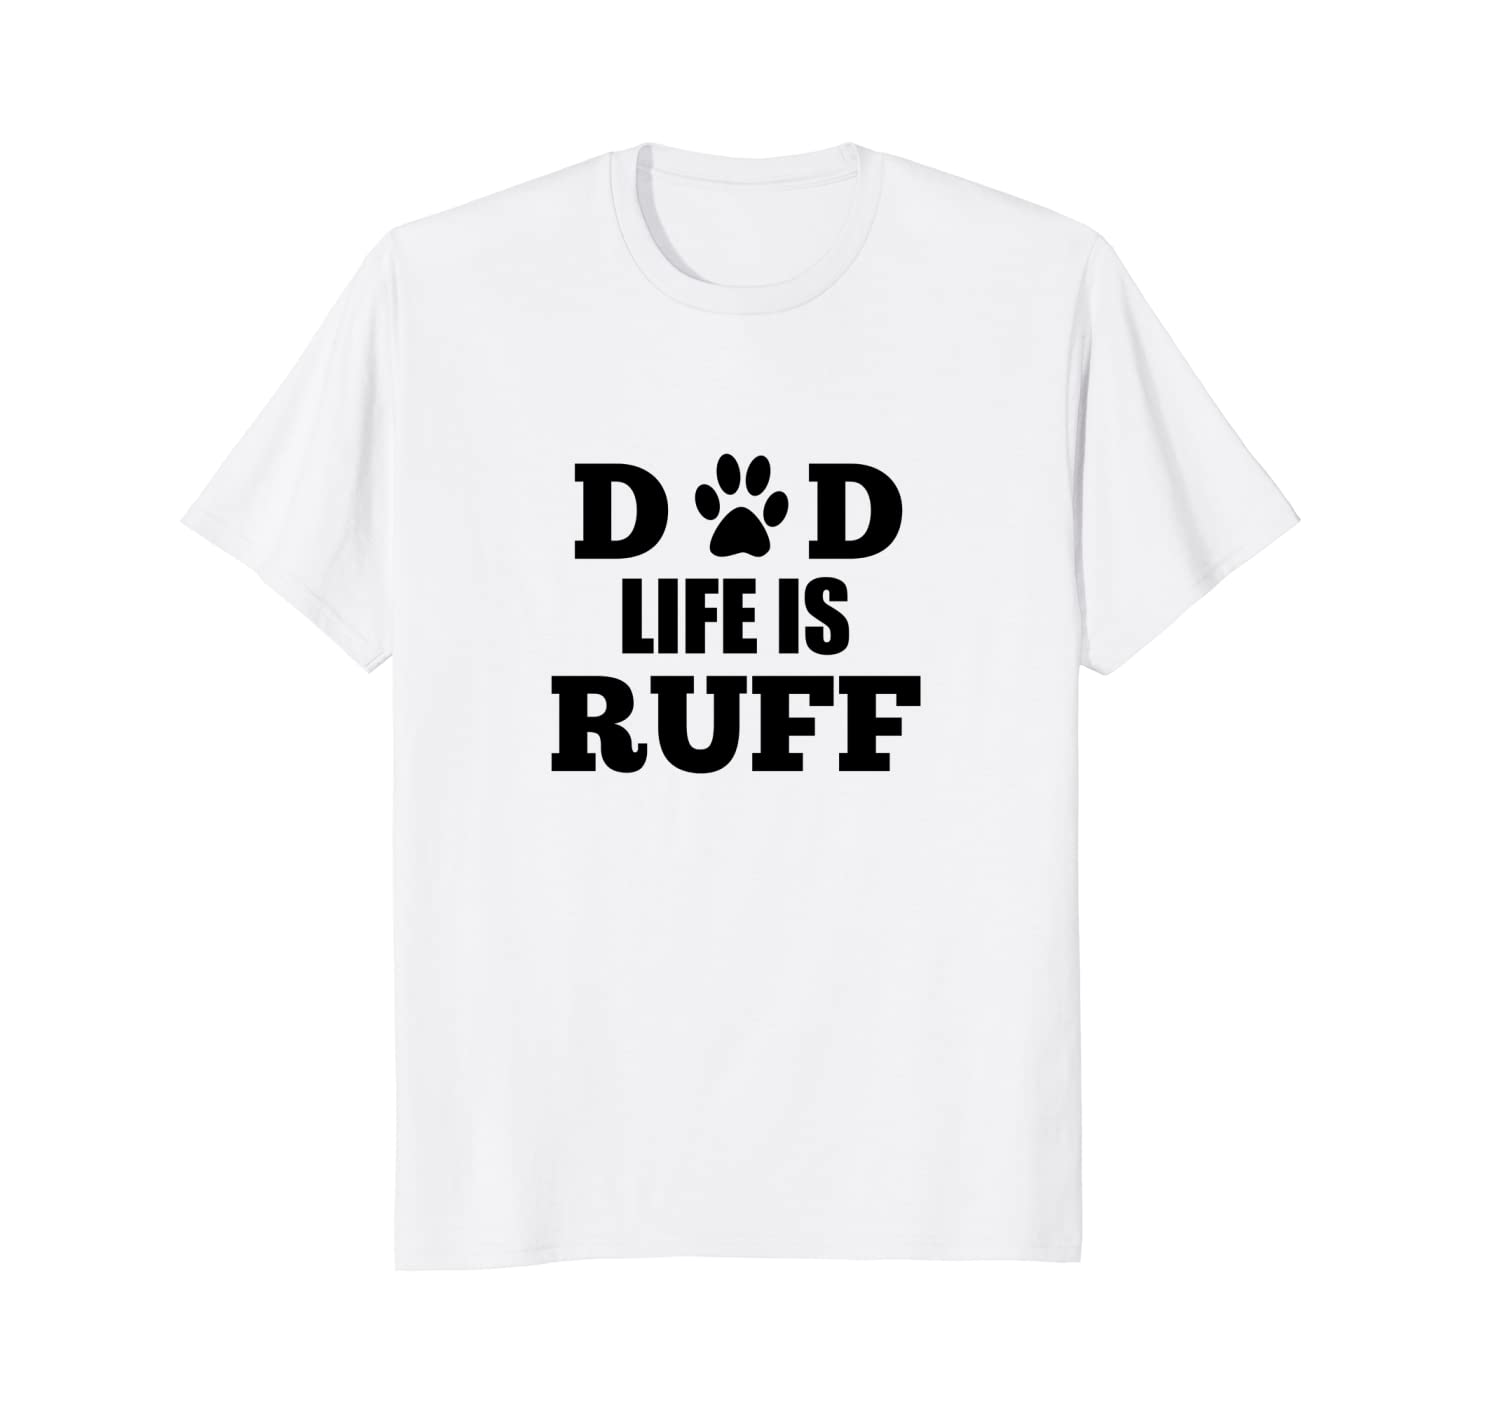 Dad Life Is Ruff T-Shirt Men's Funny Dog PAW